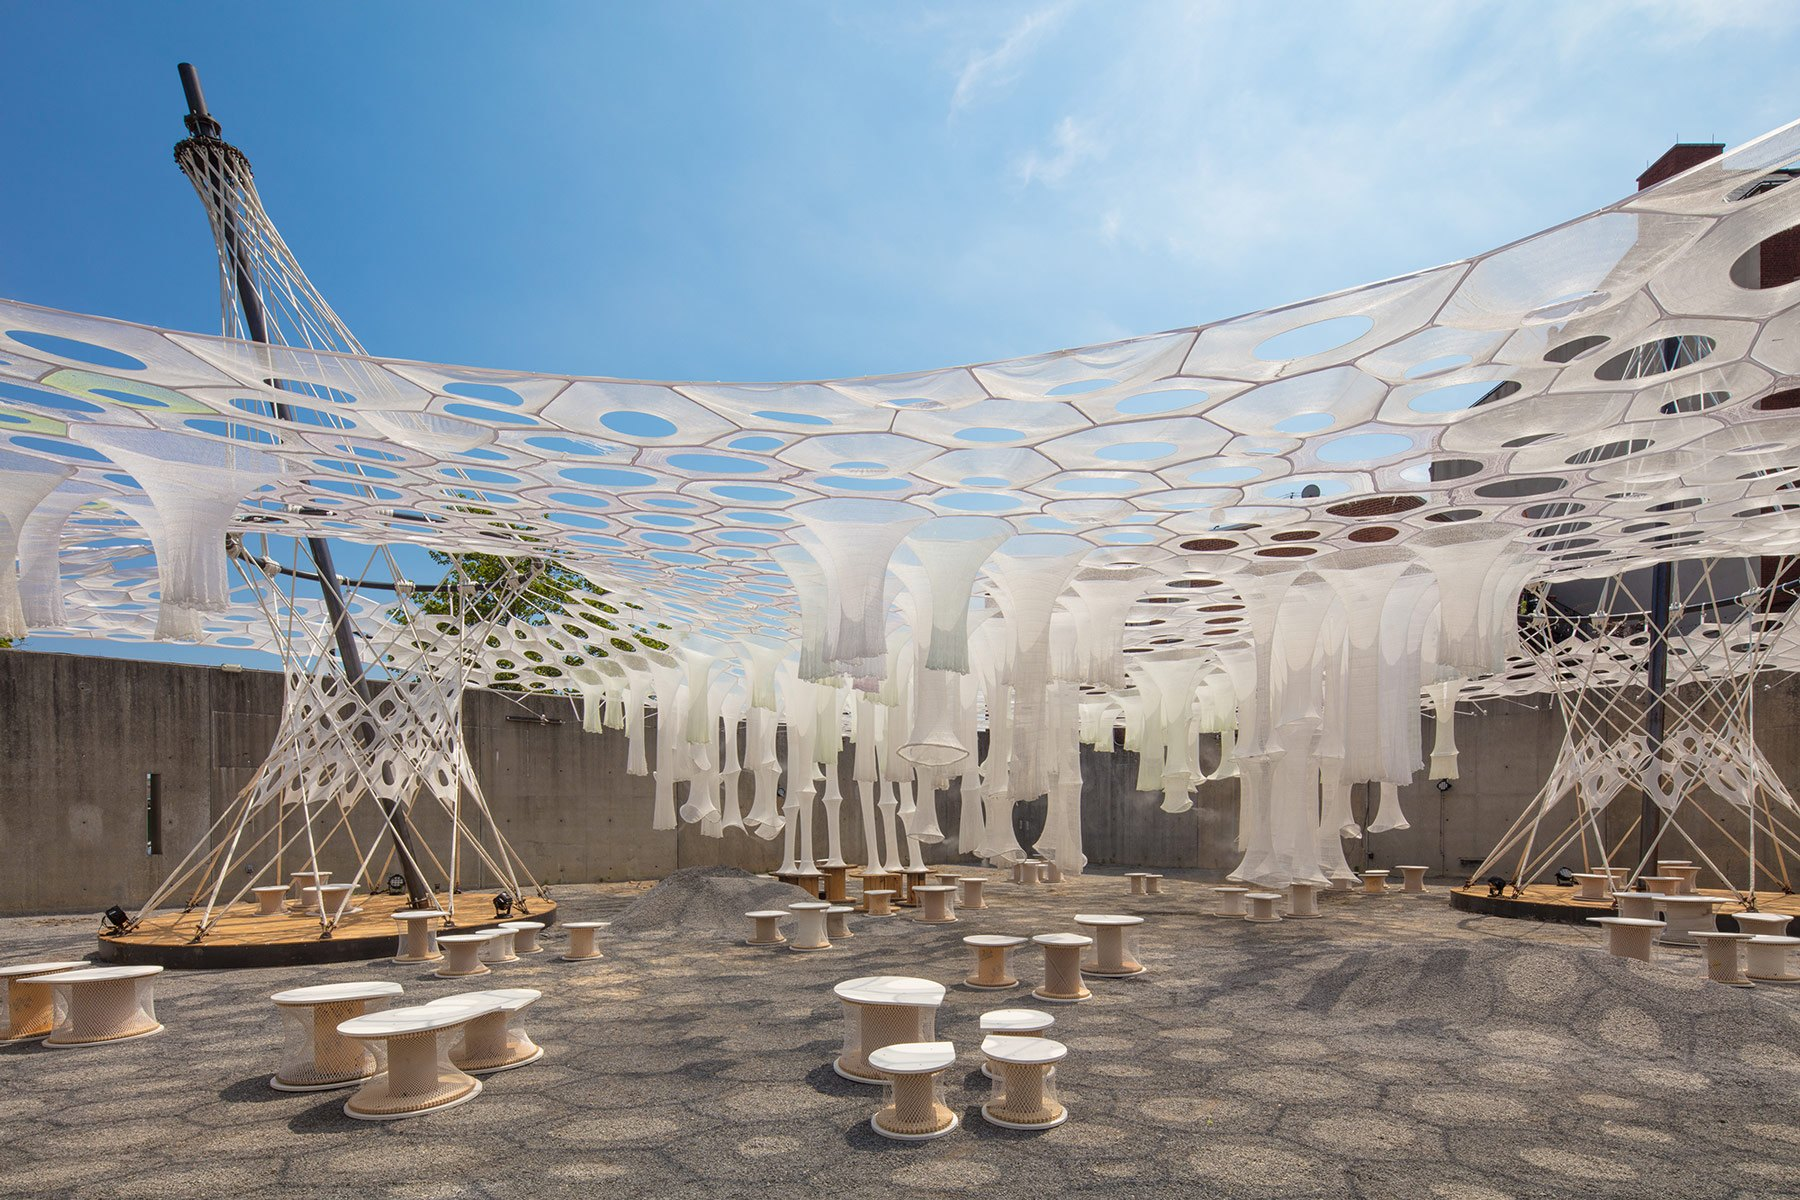 Pablo Enriquez for MoMA PS1 & Watch MoMA PS1u0027s solar canopy art installation get installed | 6sqft